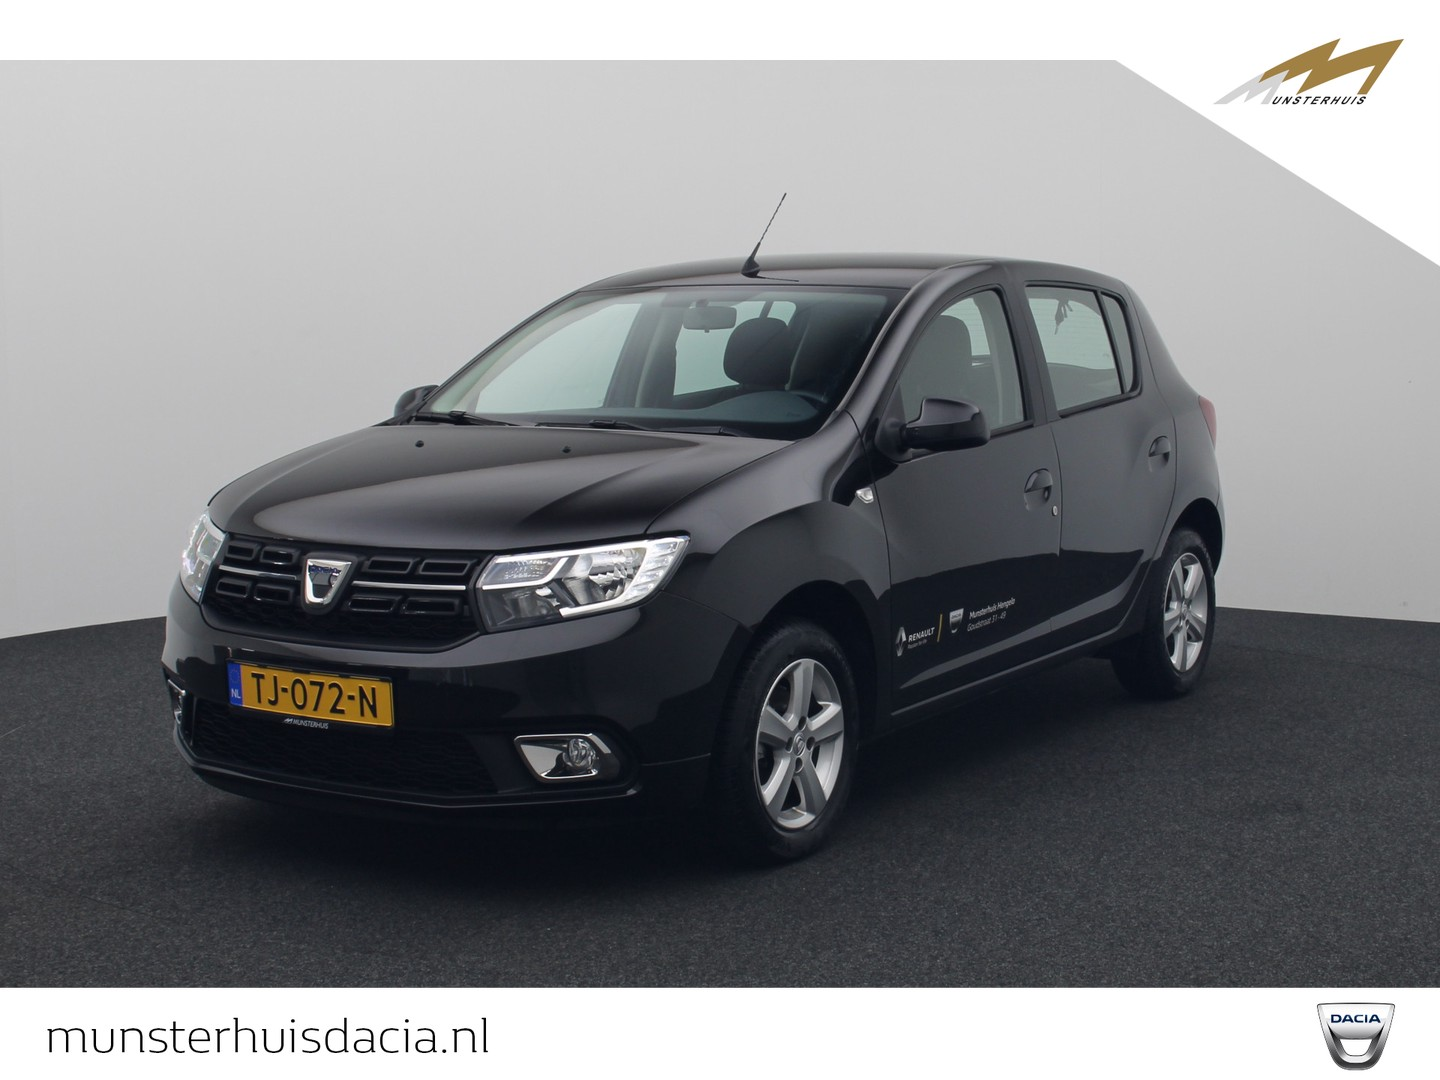 Dacia Sandero Tce 90 laureate - all season banden -